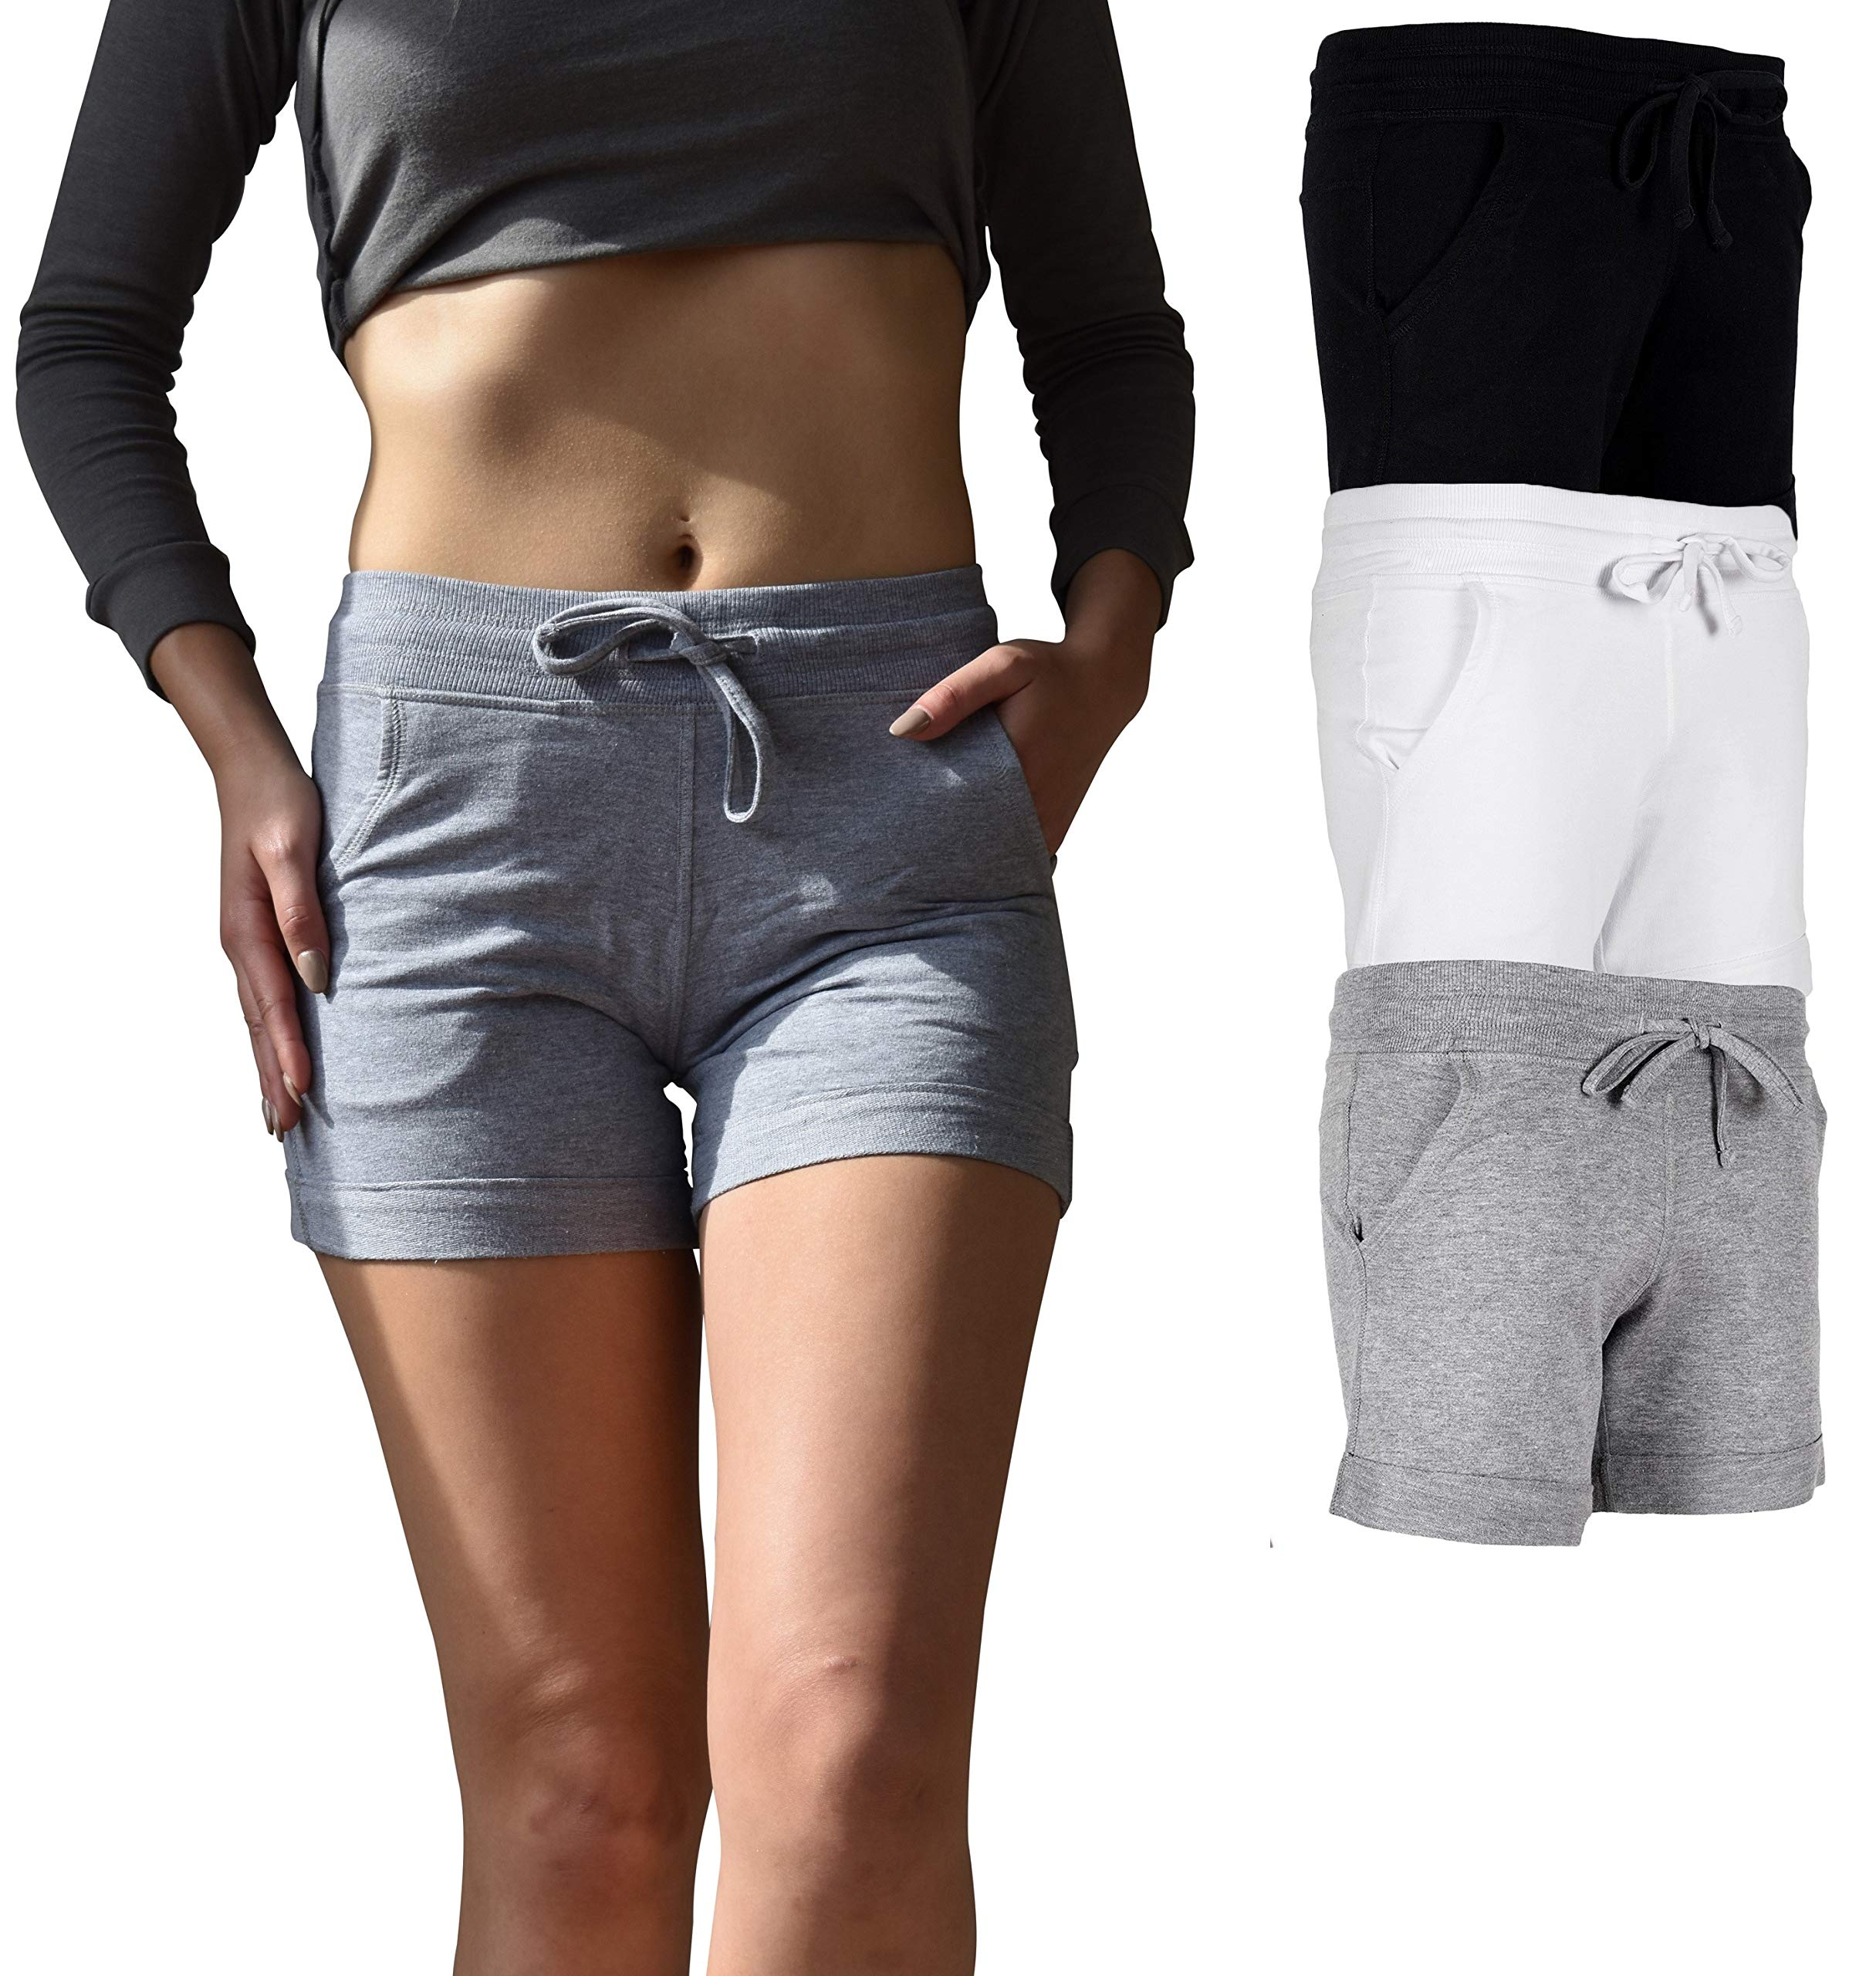 Sexy Basics Women's 3 Pack Active Wear Lounge Yoga Gym Casual Sport Shorts (3 Pack-Black/Grey/White, X-Large)